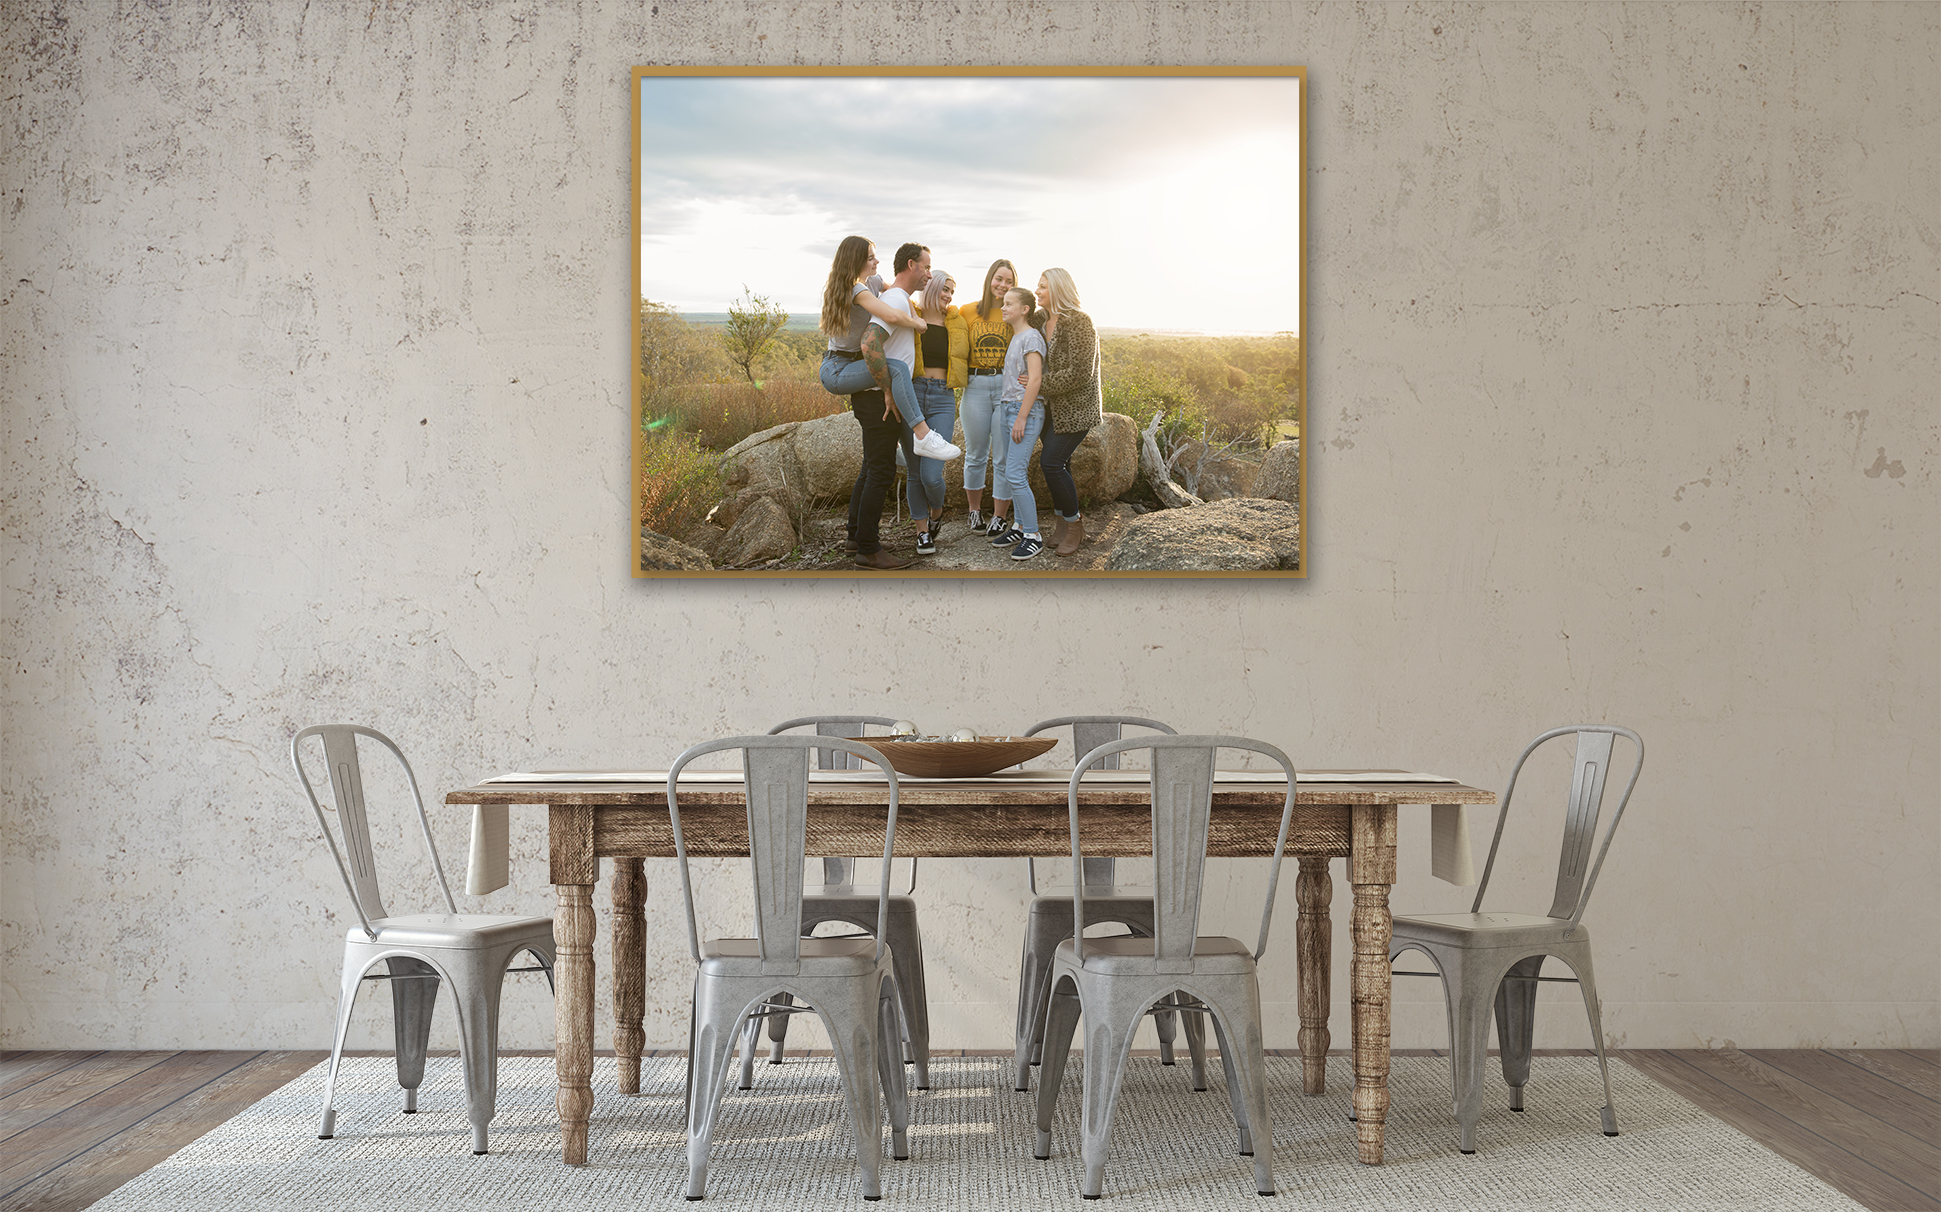 Floating Framed Canvas - Stunning teak framed canvas that looks beautifully rustic. Available individually or in wall groupings custom designed for your home. These canvases come with a 75 year guarantee, even for accidental damage, how incredible is that?Prices start from $450.